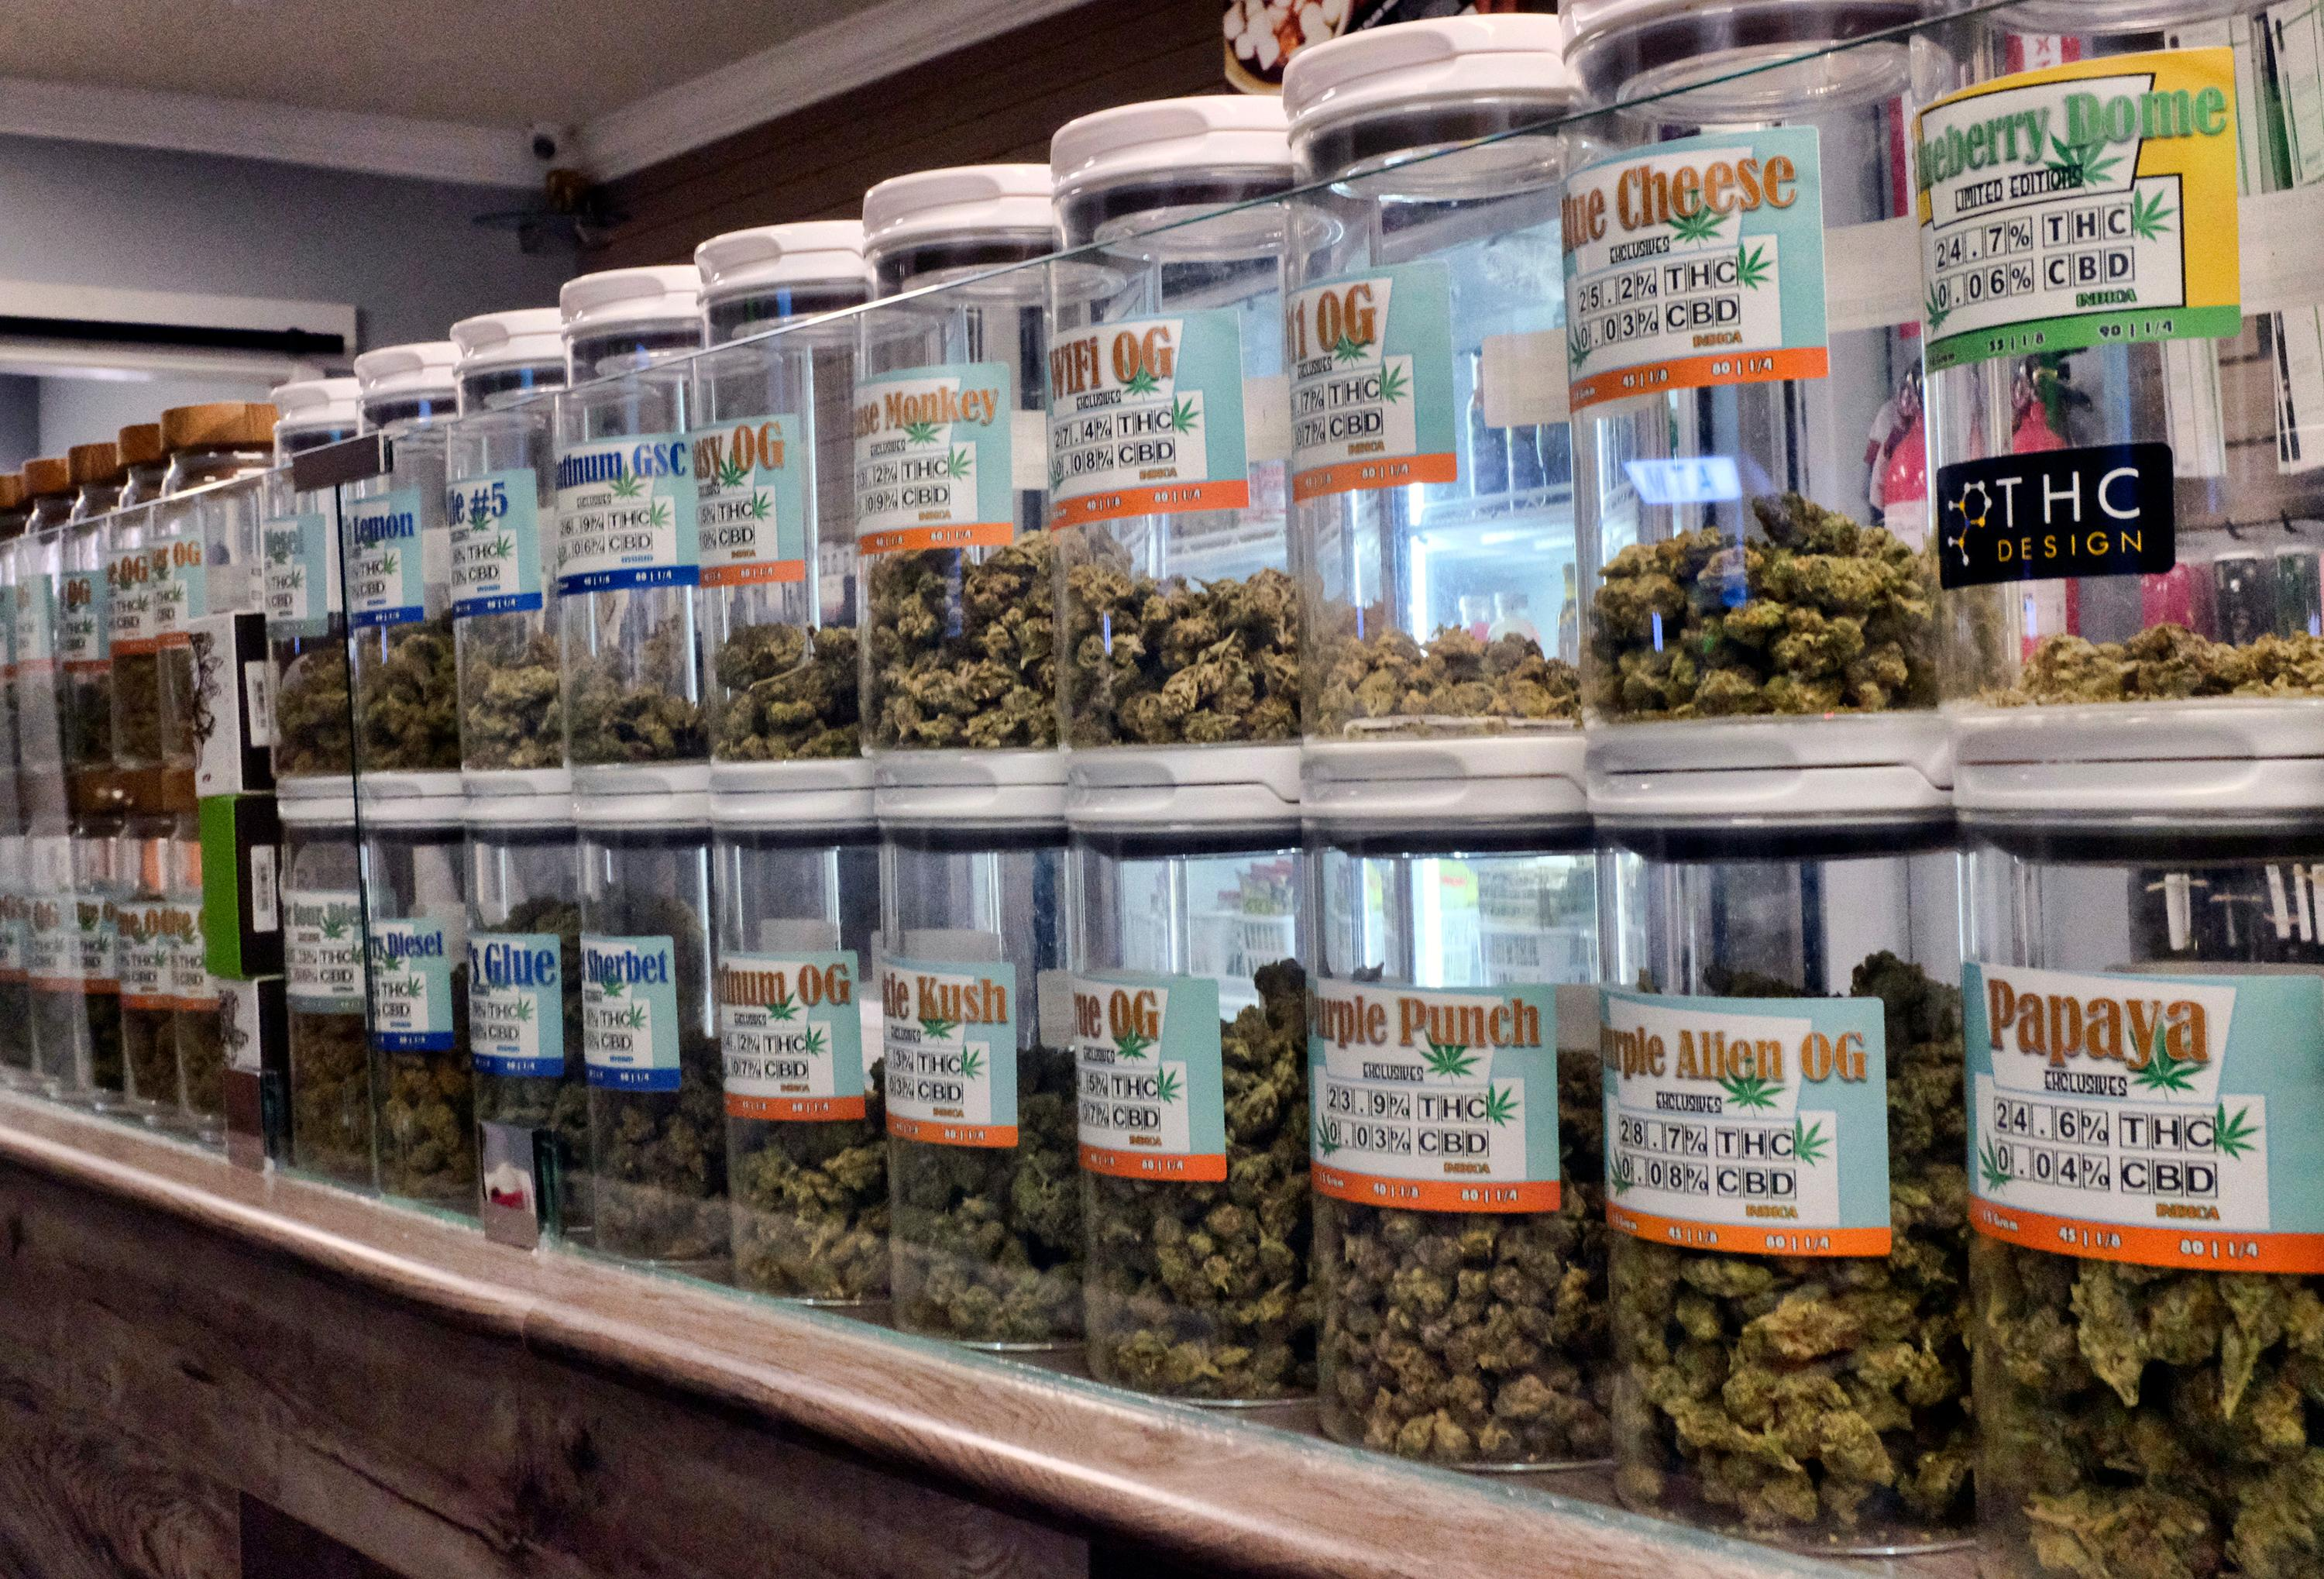 FILE - This Friday, Nov. 3, 2017 photo shows jars of medical marijuana on display on the counter of Western Caregivers Medical marijuana dispensary in Los Angeles. When U.S. Attorney General Jeff Sessions green-lighted federal prosecutors to pursue violators of federal marijuana laws, not only states that legalized recreational pot are at risk of a crackdown, but so is most of the rest of America. All but four states allow some form of medical marijuana, even Sessions' home state of Alabama. (AP Photo/Richard Vogel, File)